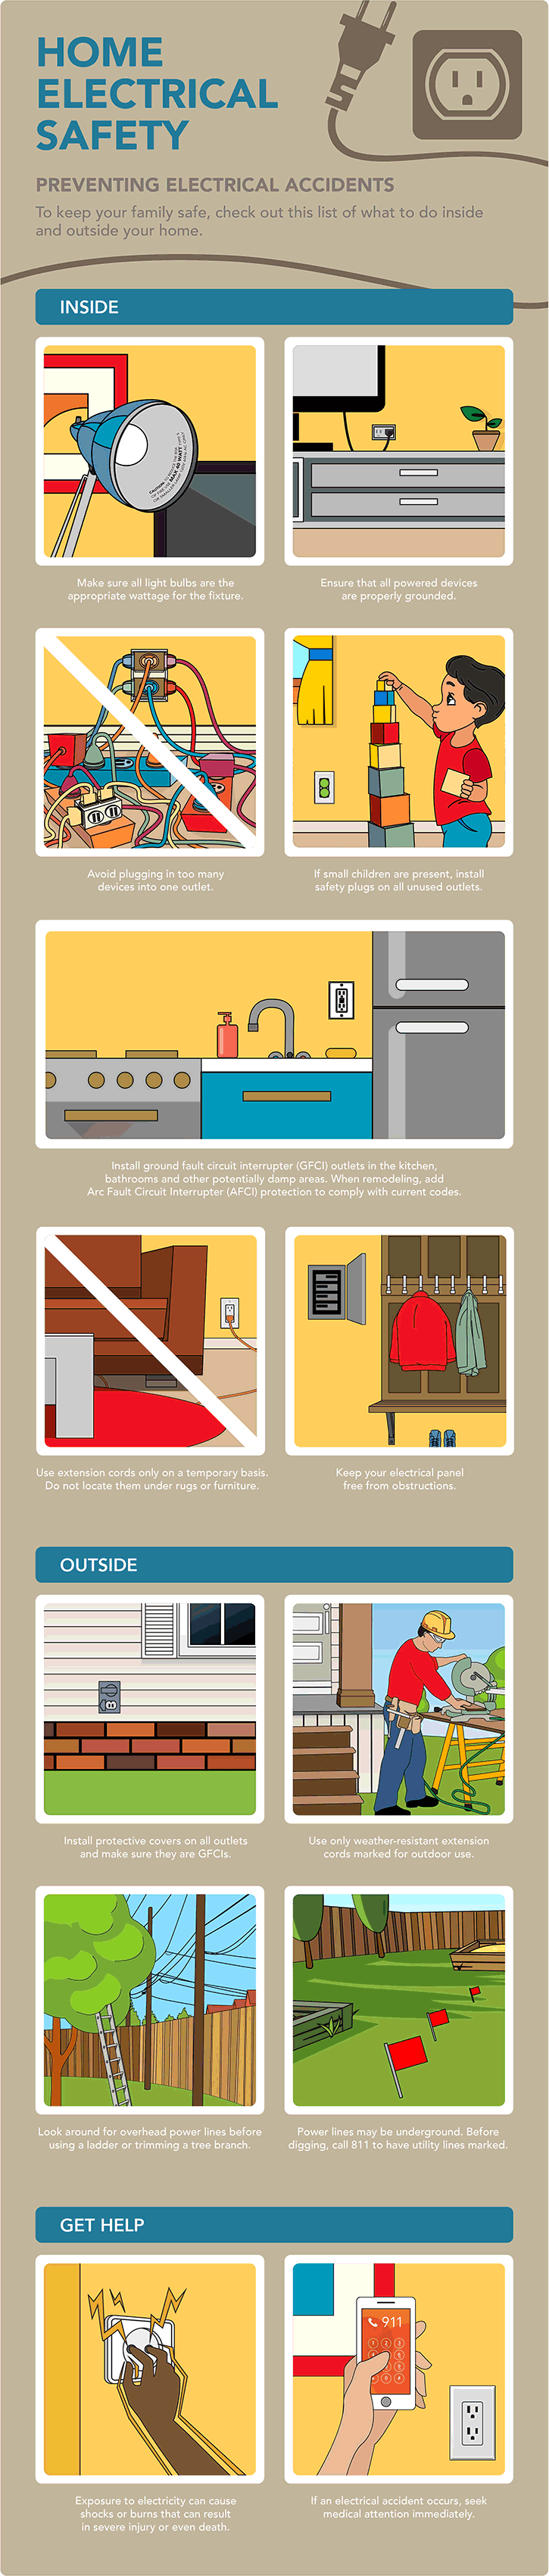 Home Electrical Safety infographic